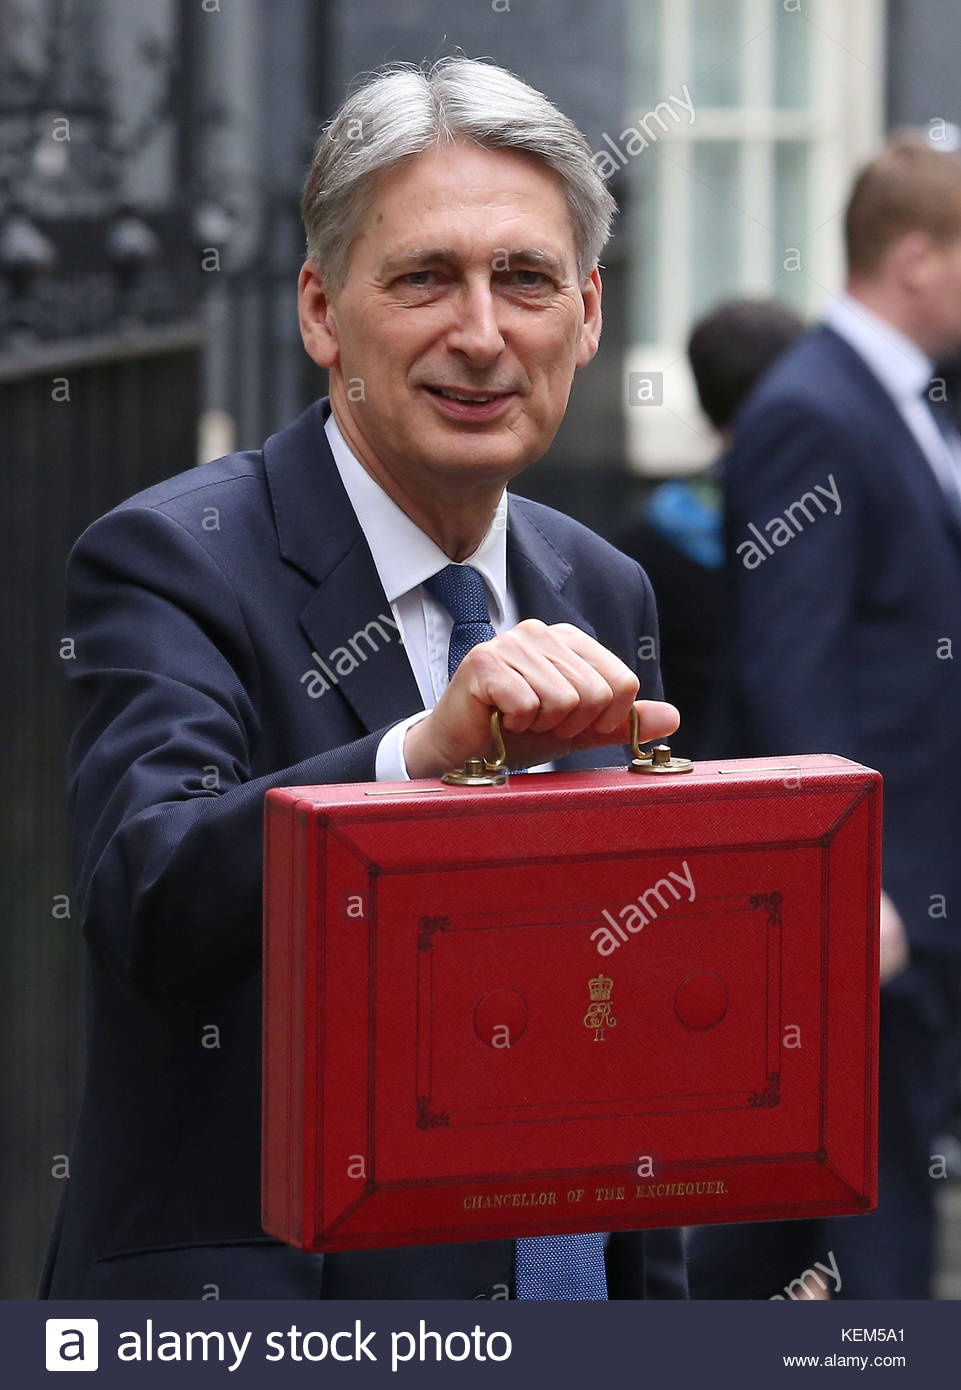 À l'embargo lundi 23 octobre 0001 photo de fichier en date du 08/03/17 de Philip hammond que le gouvernement Photo Stock